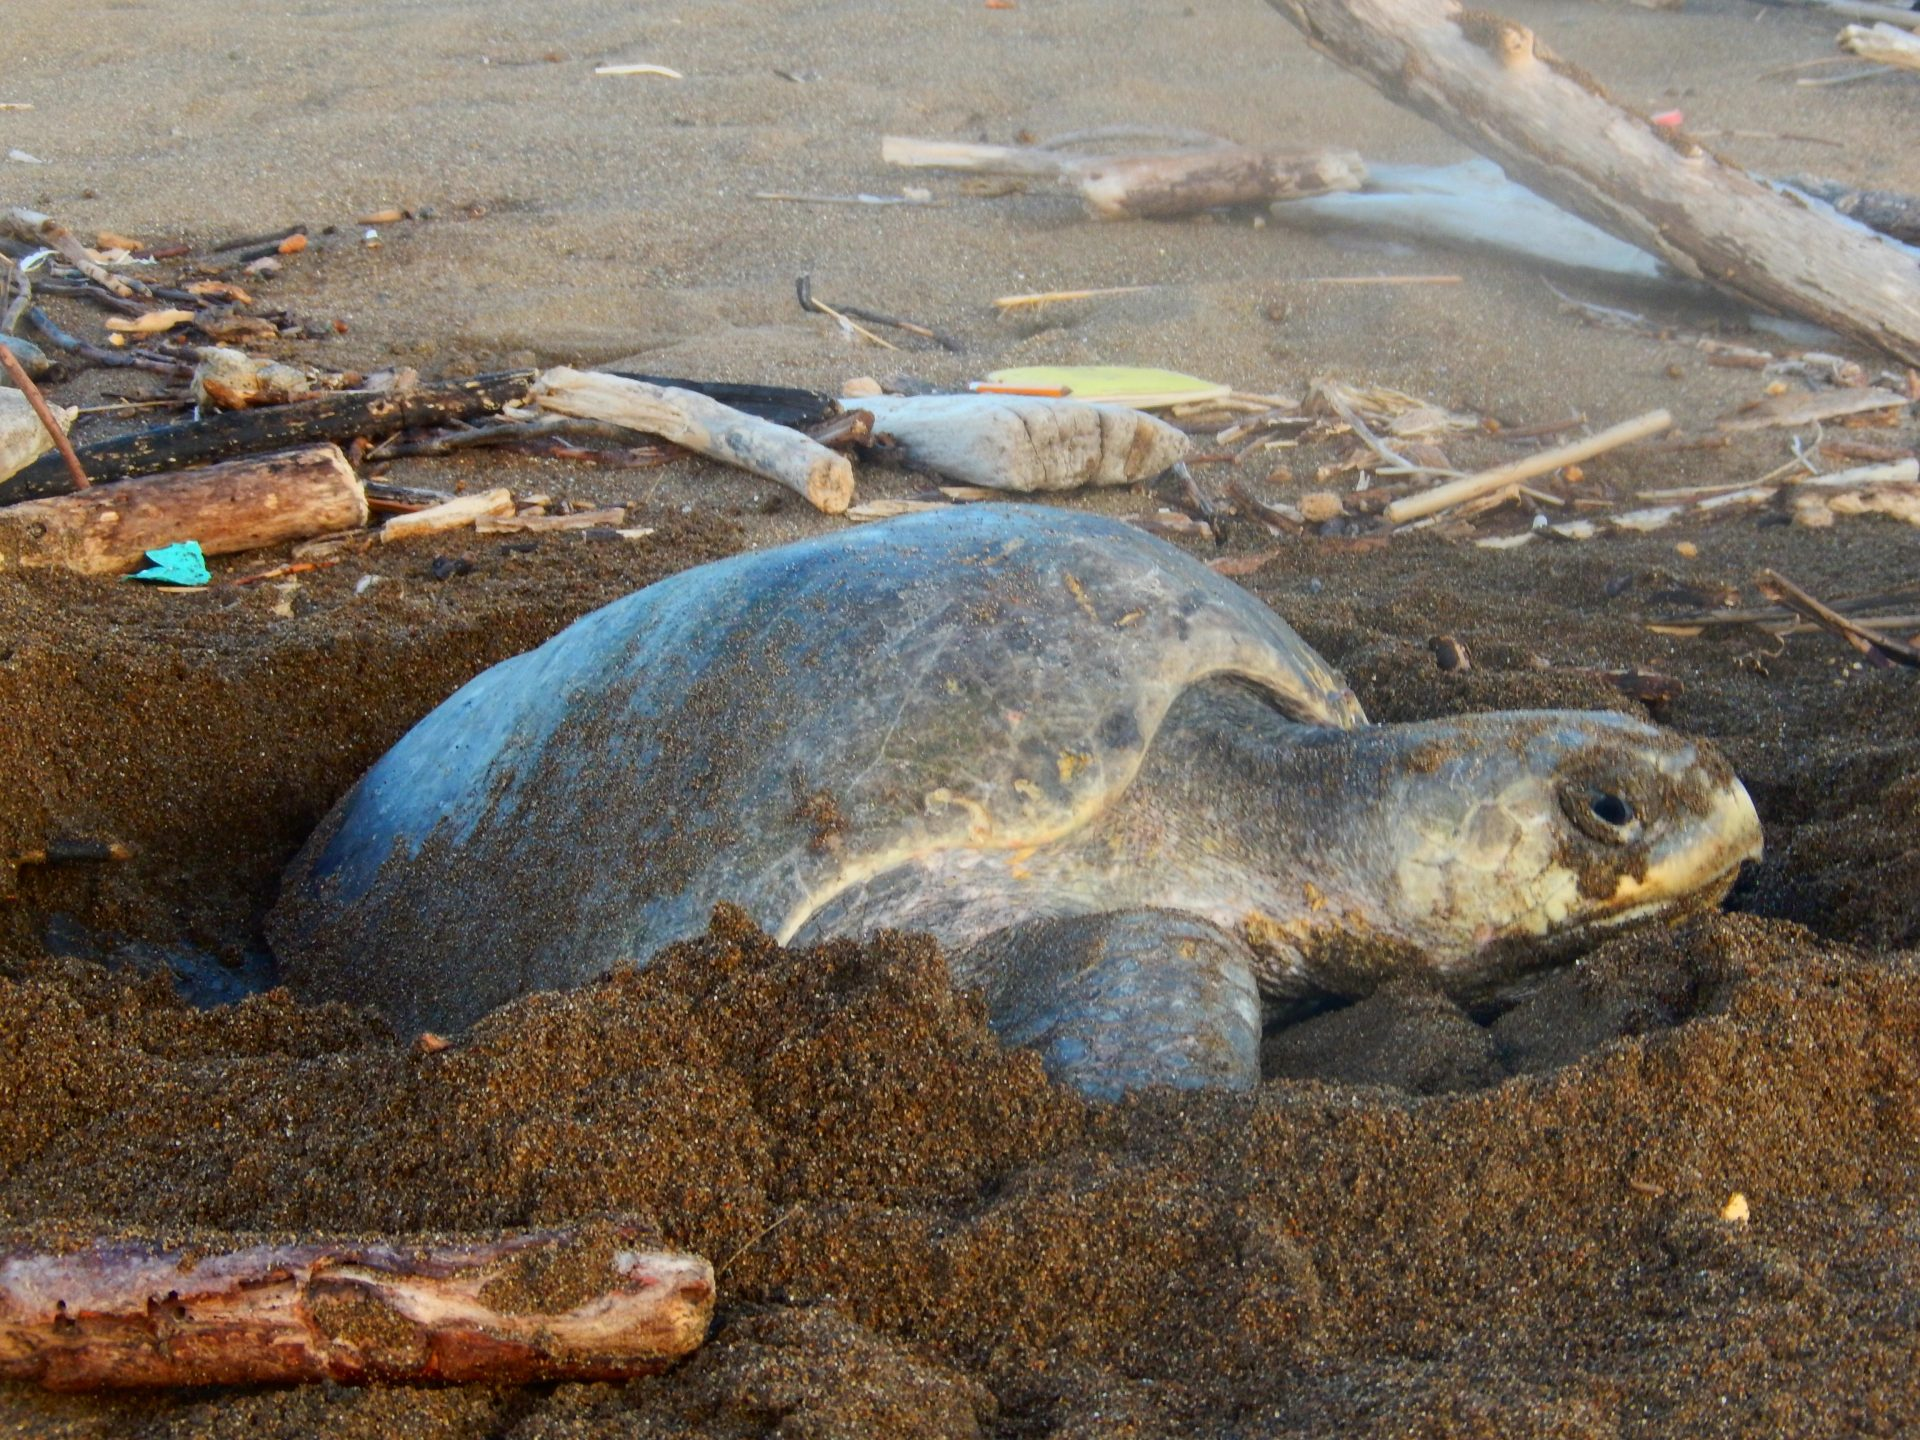 The sea turtle nesting season is finally starting for the CREMA team